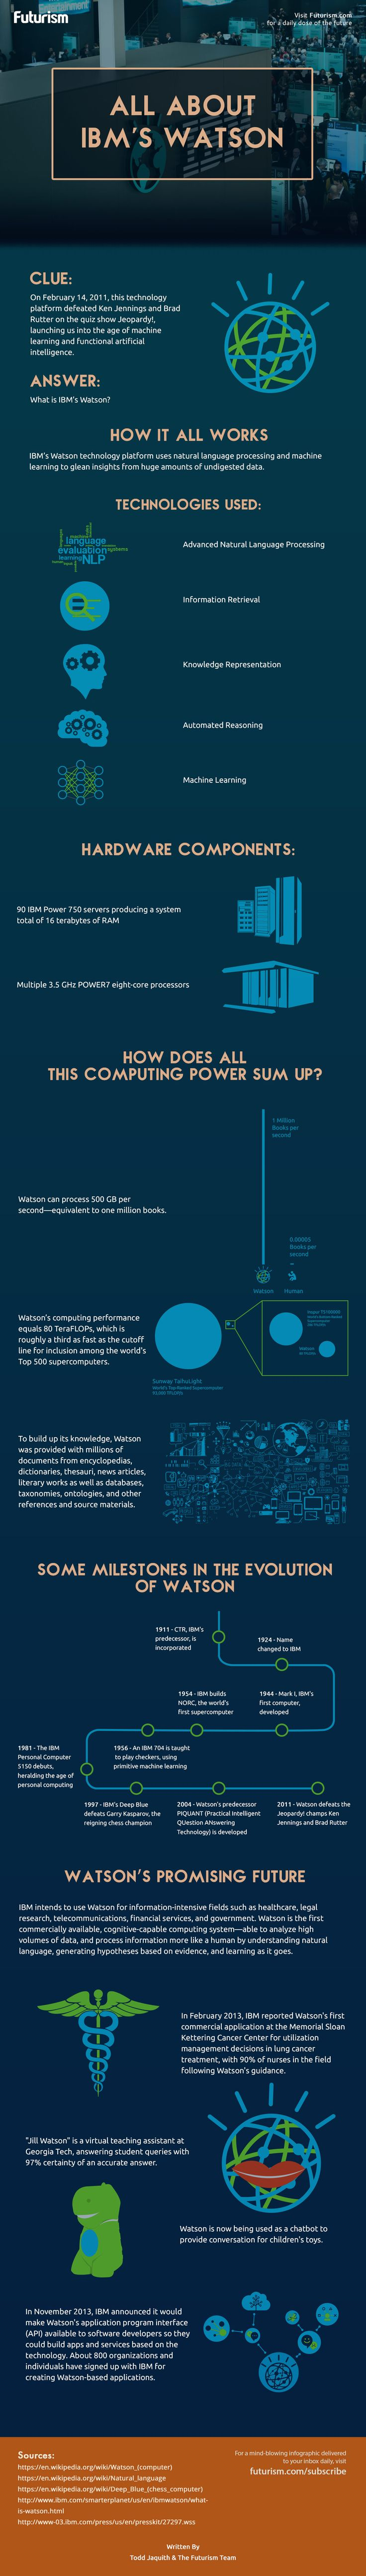 All About IBM's Watson [Infographic] — From Jeopardy to Pokemon Go, IBM's Watson won't stop until it can beat us at everything. Learn how the cognitive system uses natural language processing and machine learning to make sense of massive amounts of data. — https://futurism.com/images/all-about-ibms-watson-infographic/